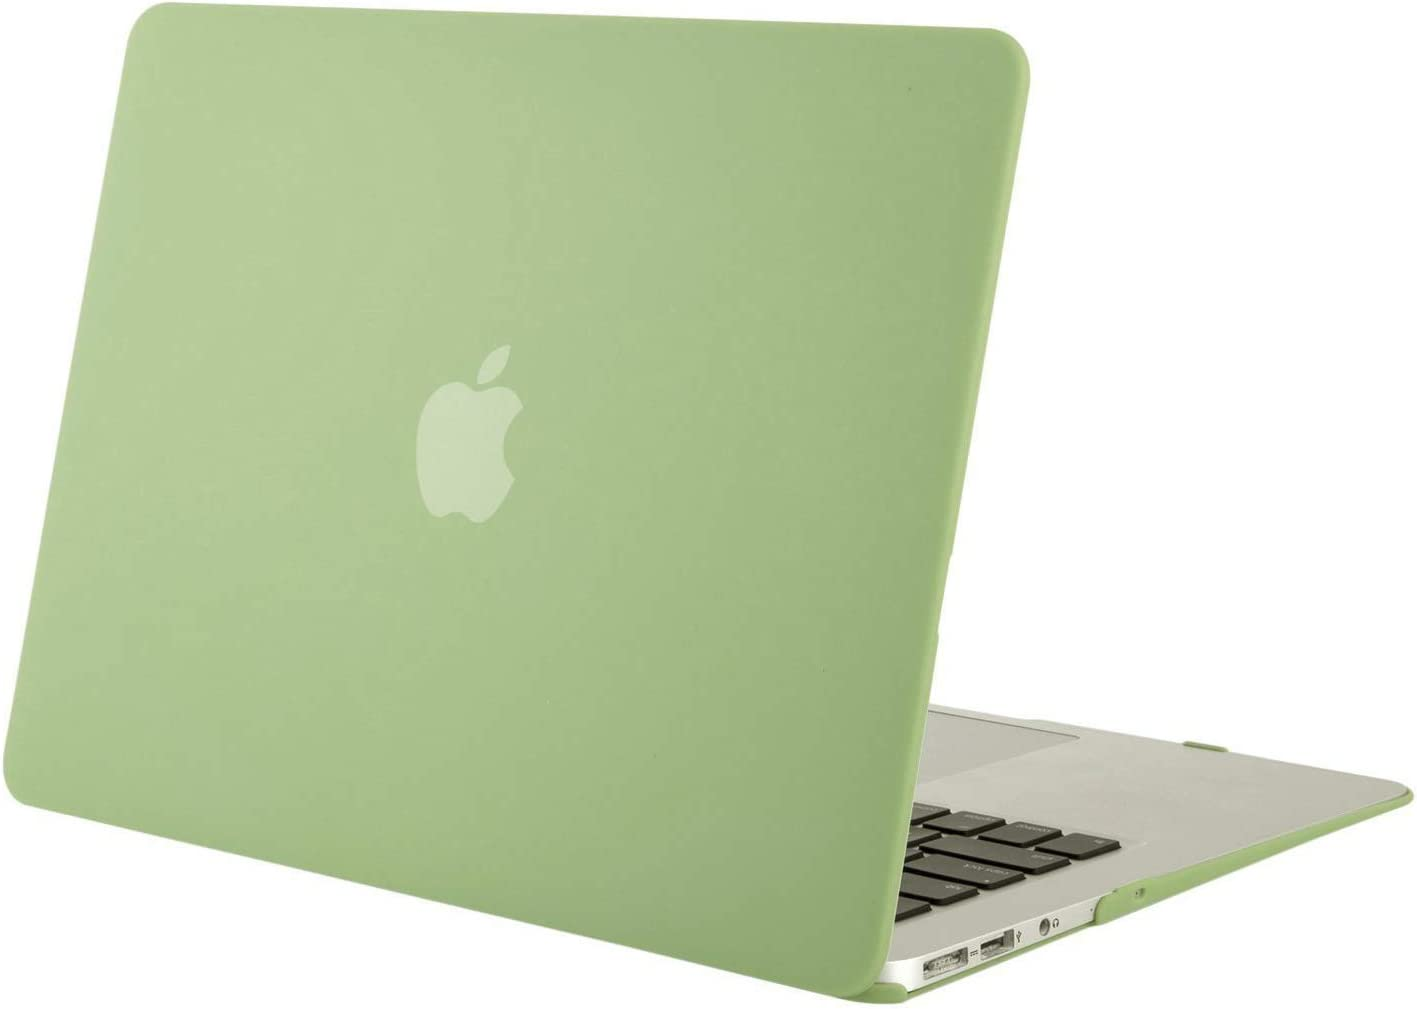 MOSISO MacBook Air 13 inch Case (Models: A1369 & A1466, Older Version 2010-2017 Release), Plastic Hard Shell Case Cover Only Compatible with MacBook Air 13 inch, Avocado Green